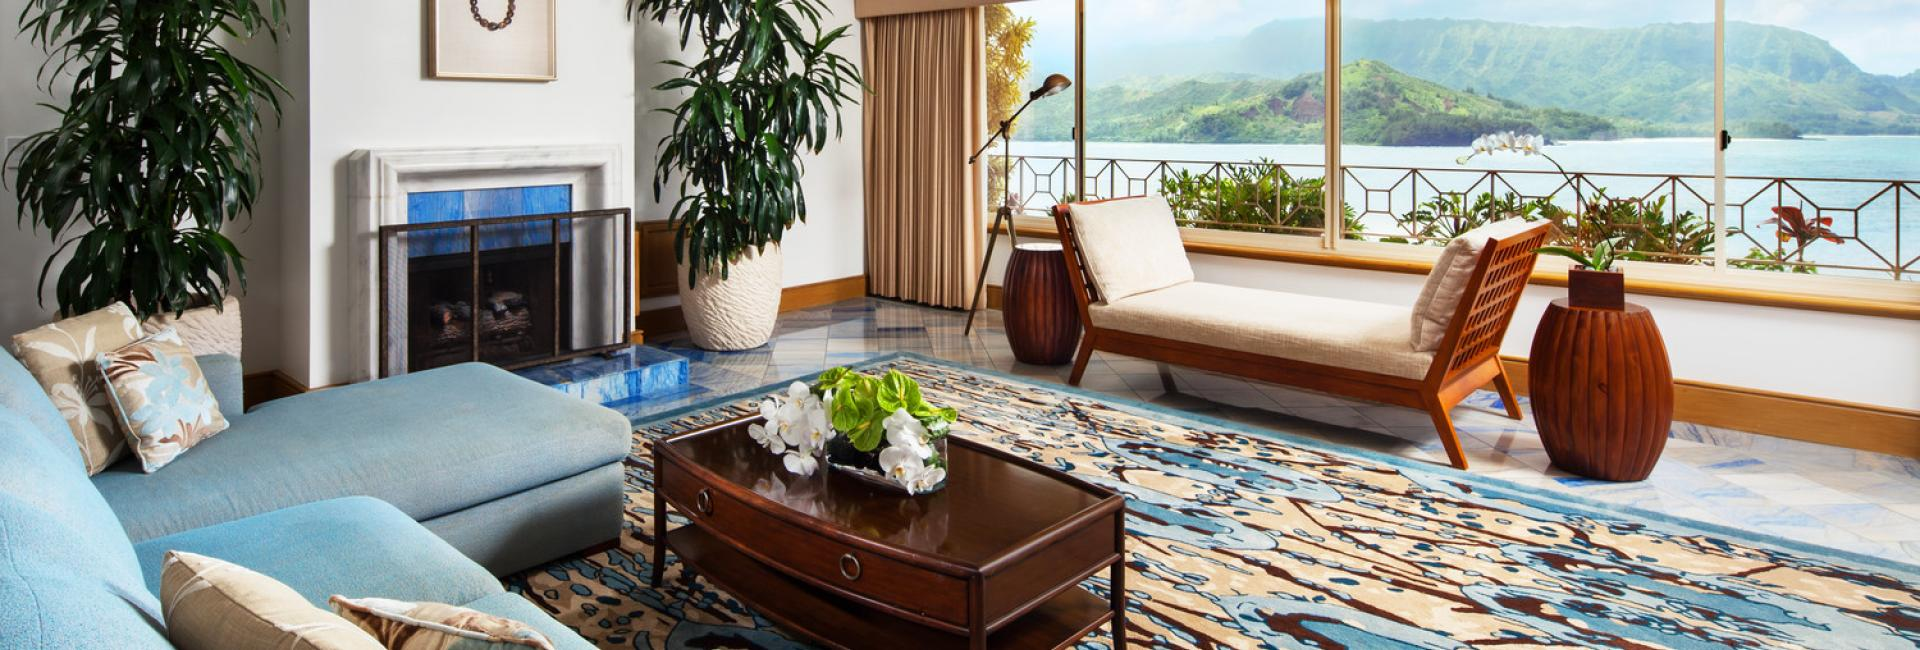 The living area of the presidential suite at Princeville Resort